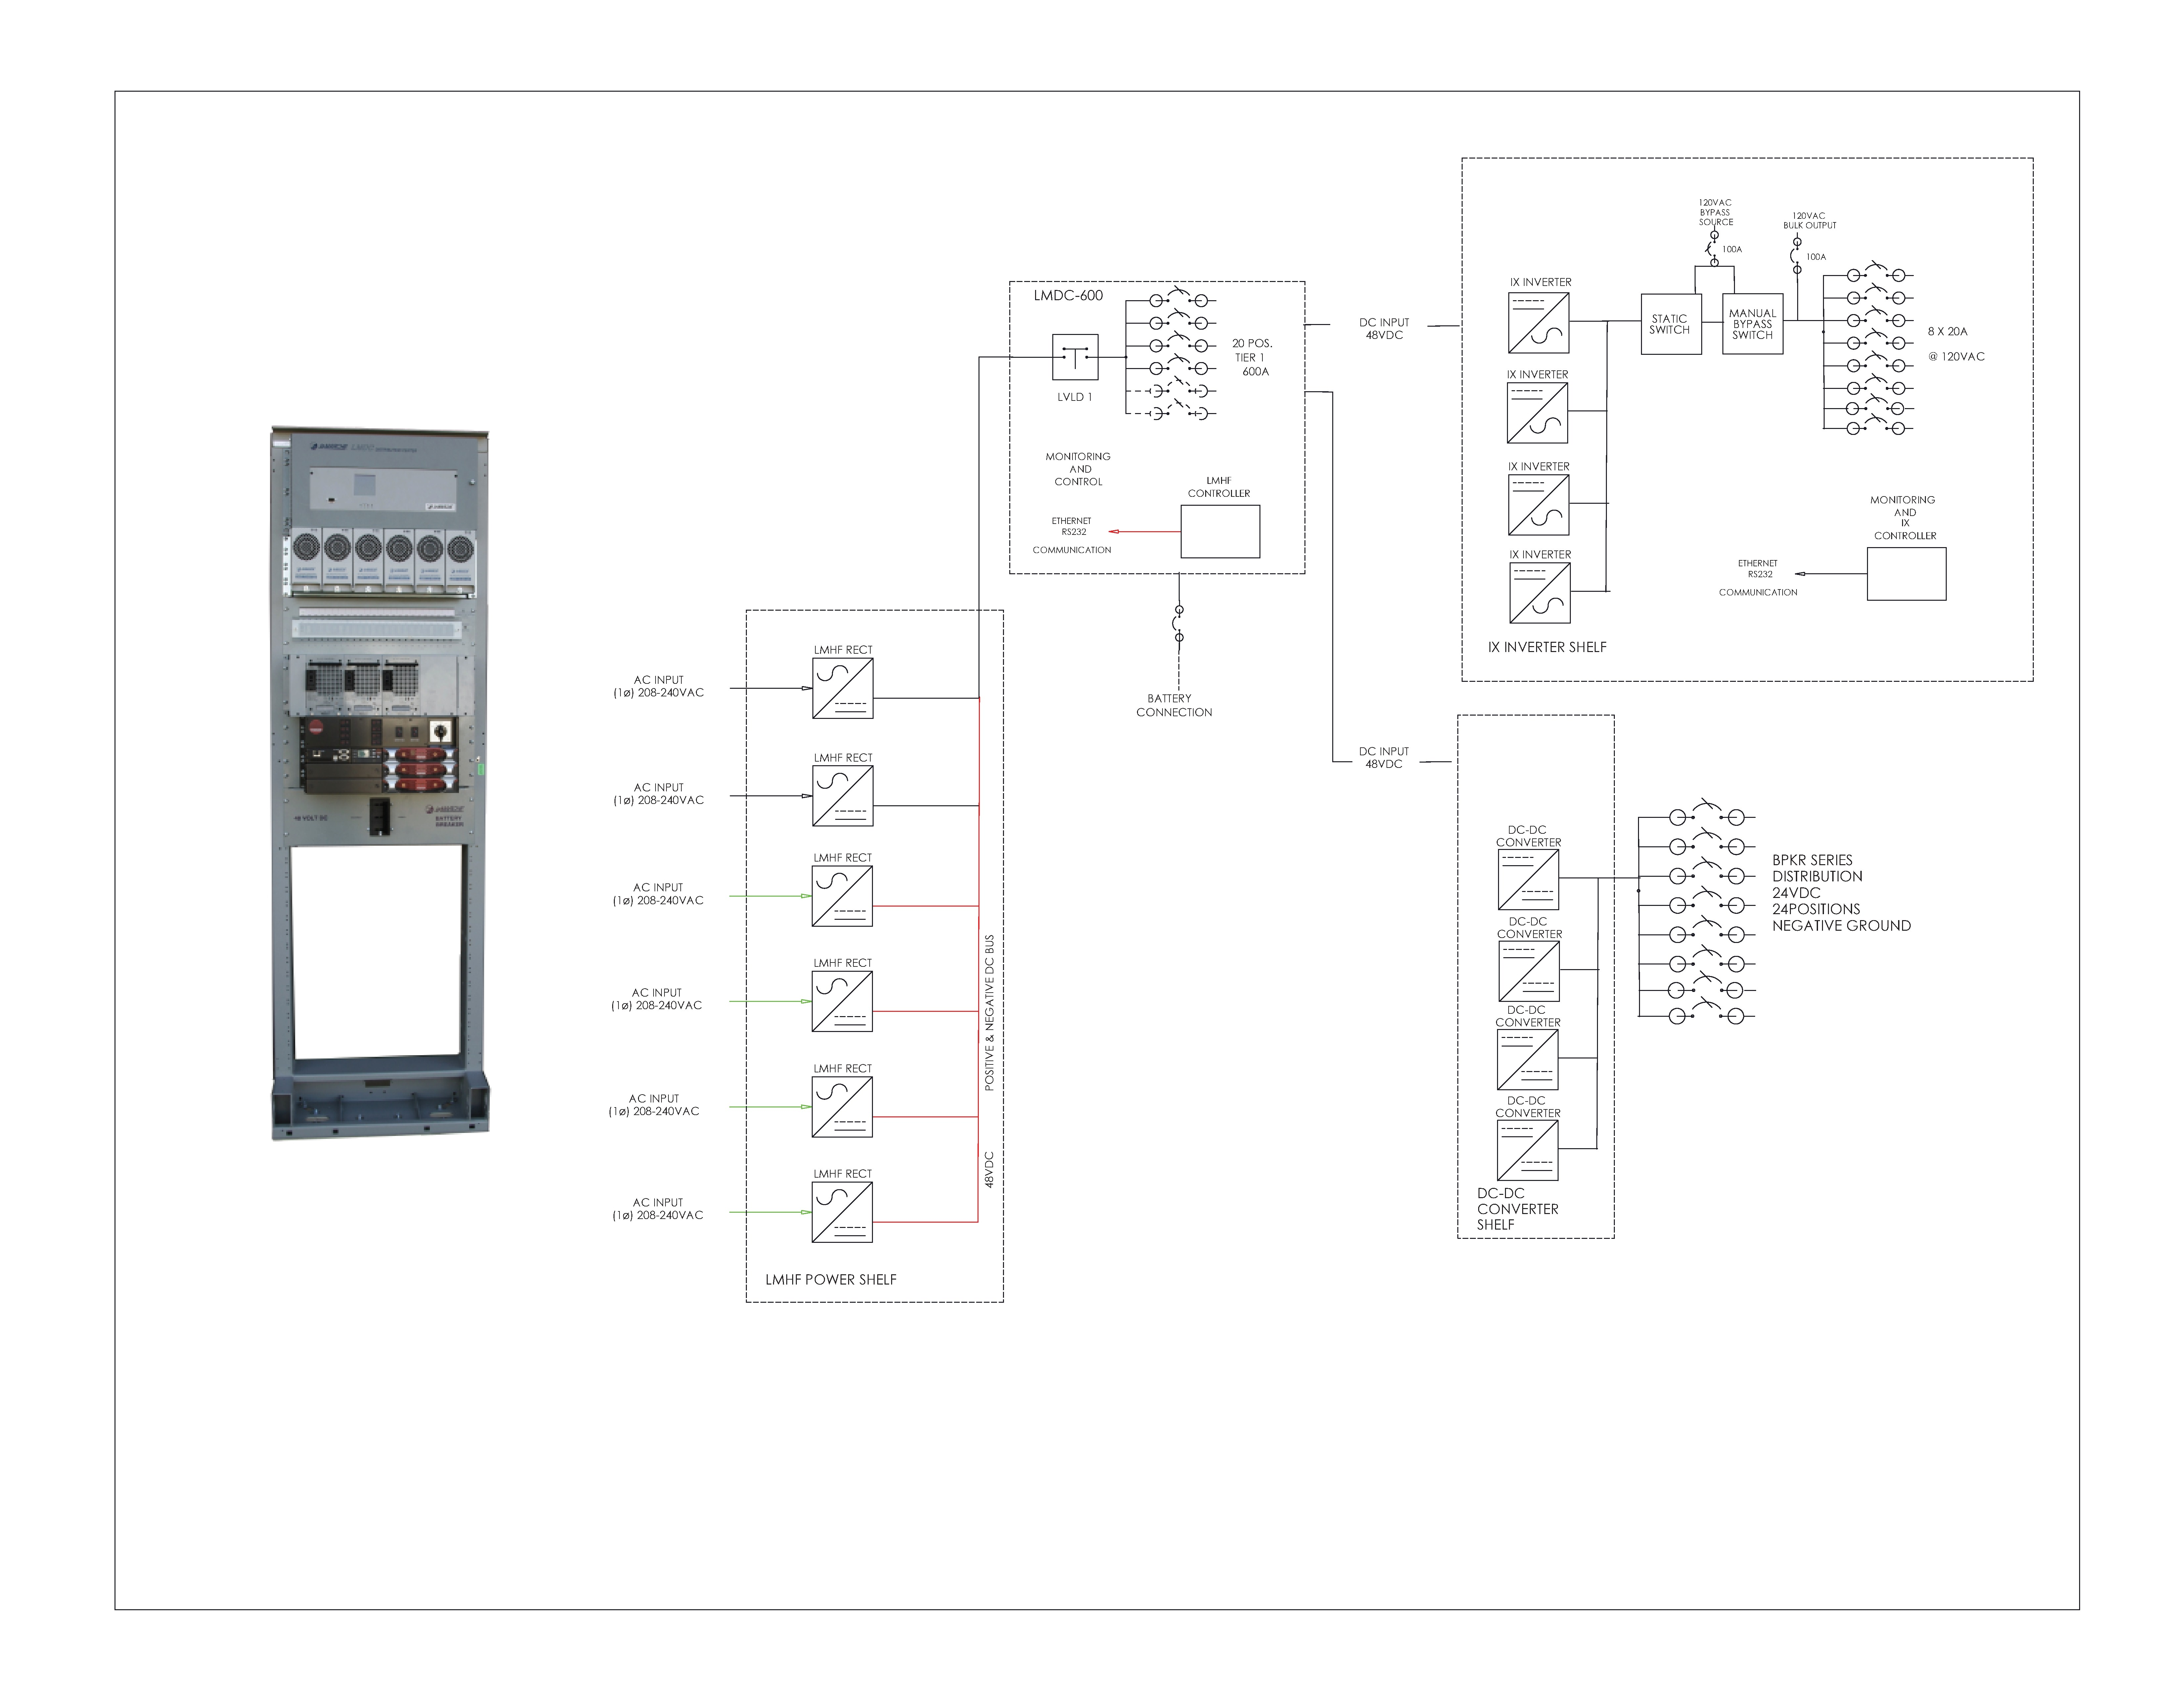 AL al jpg lamarche a46 wiring diagram at mifinder.co